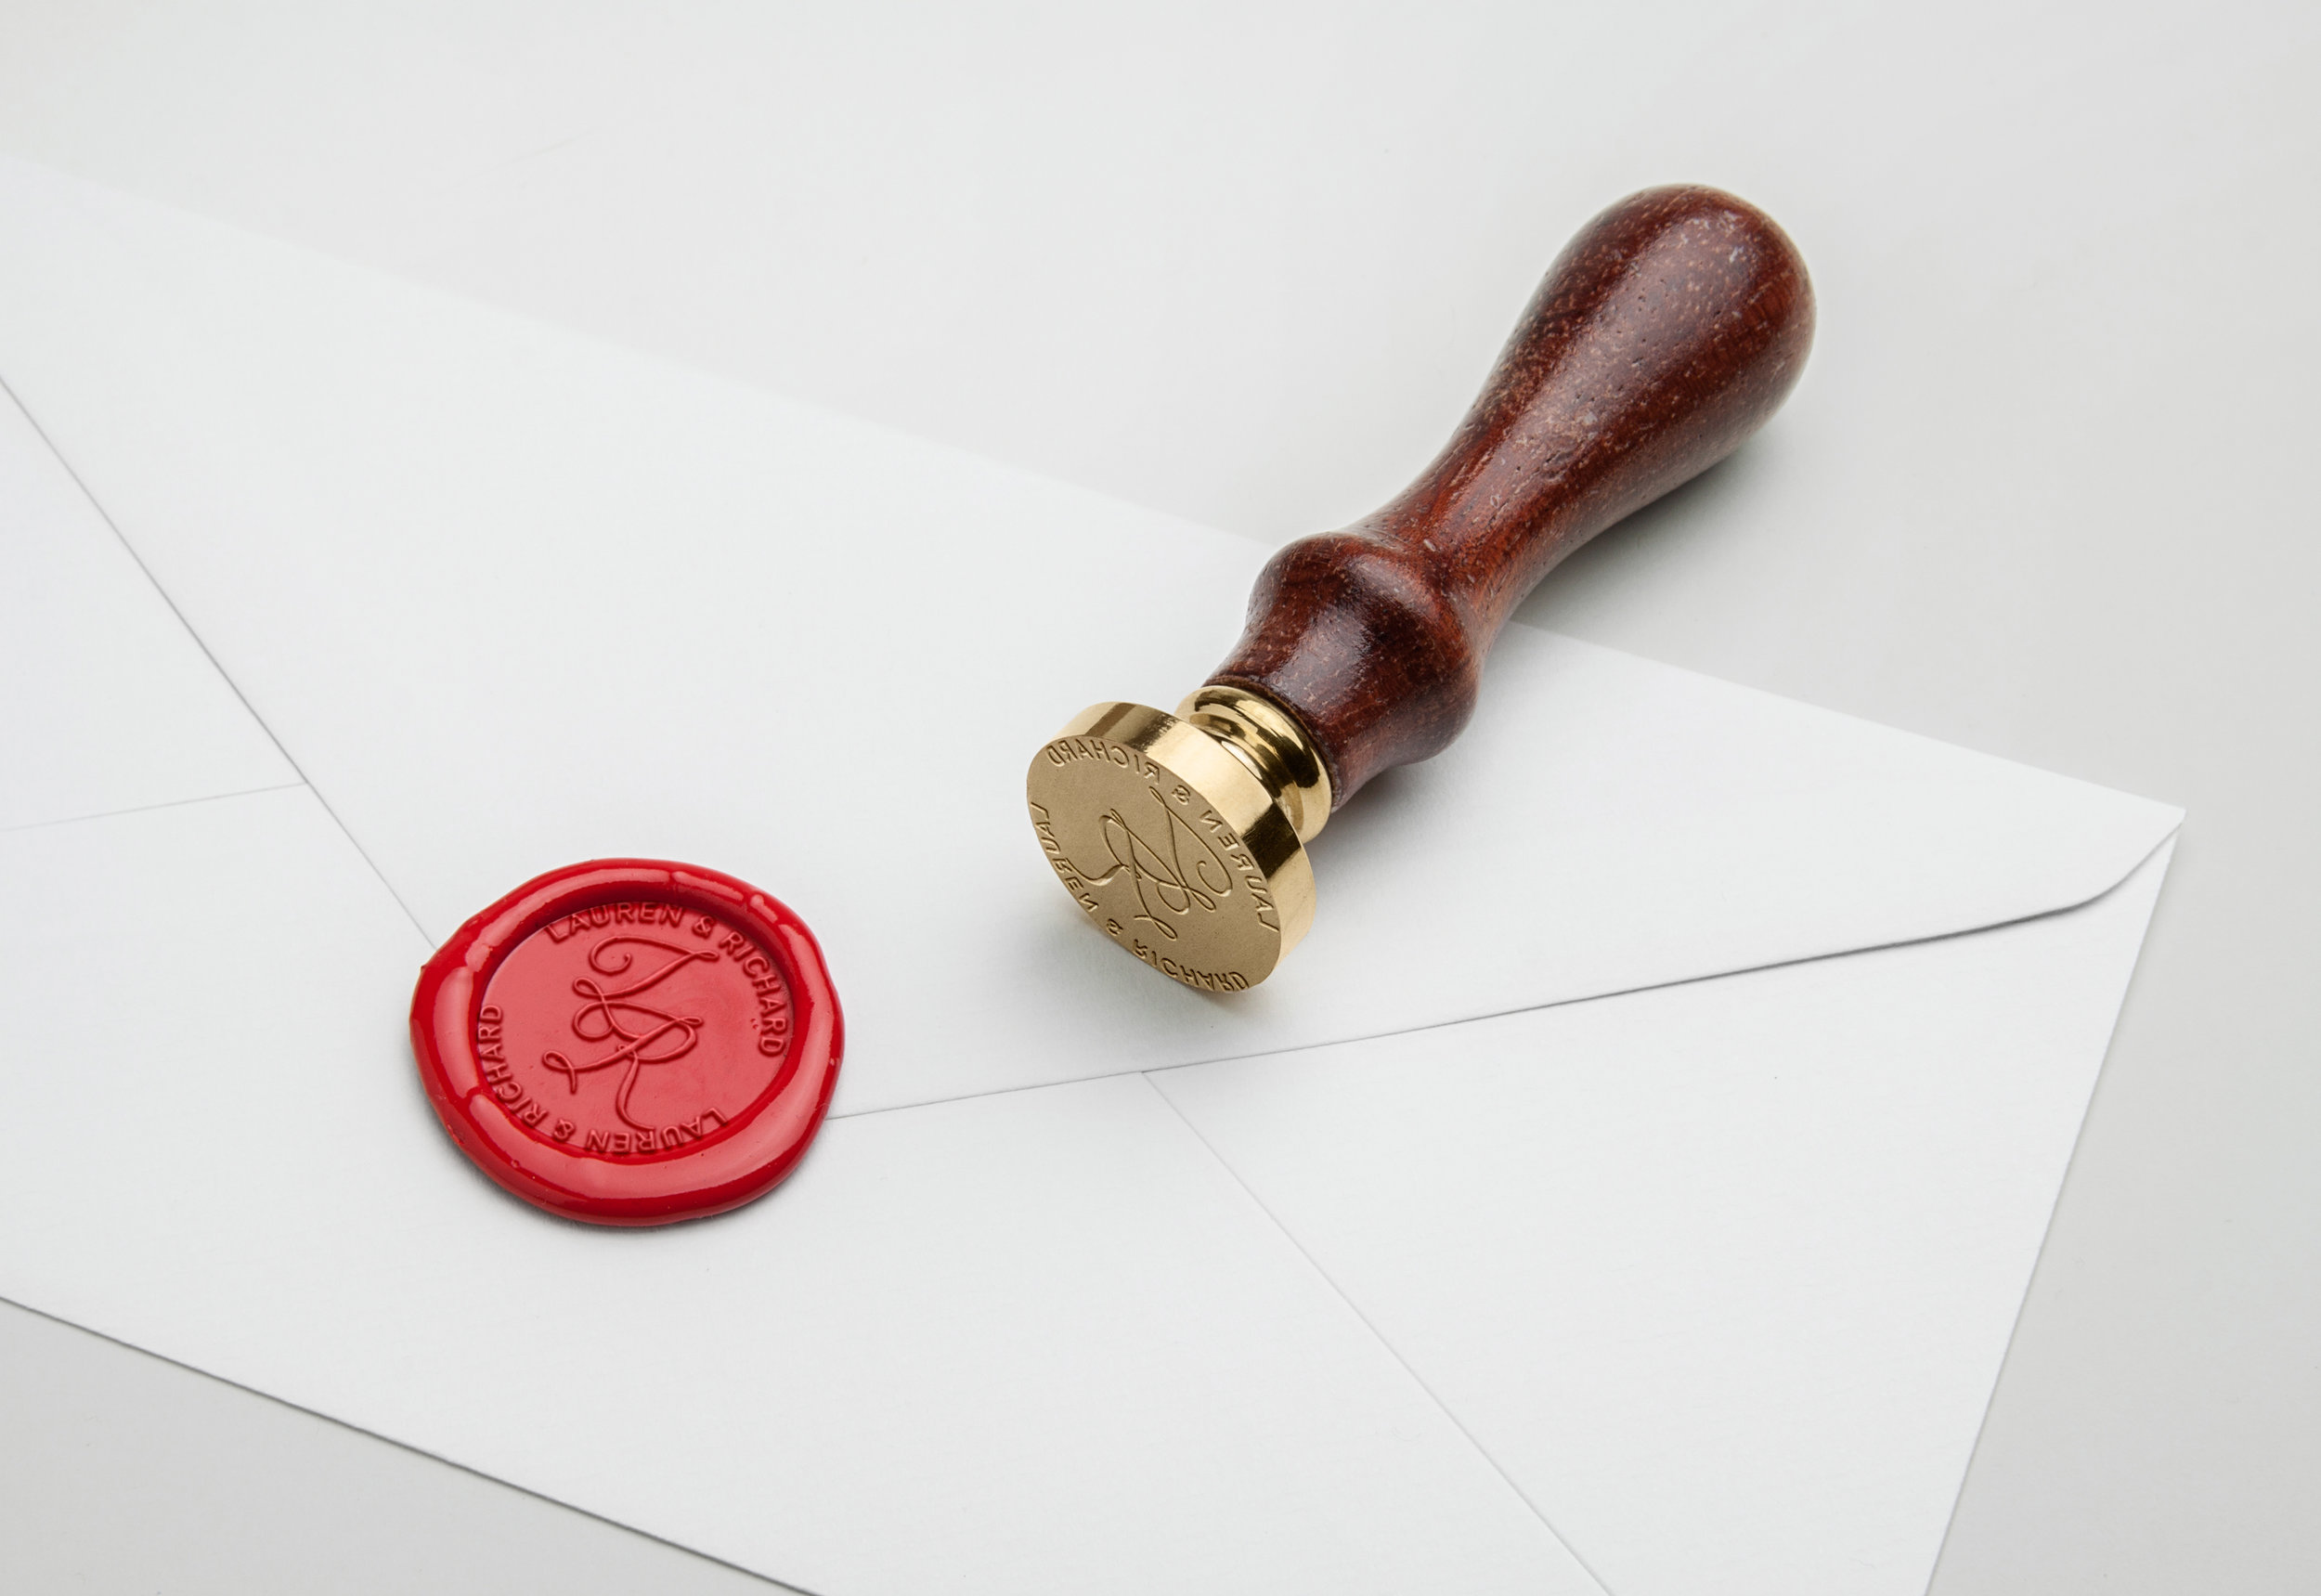 Wax Seal Stamp_ananyacards.com.jpg